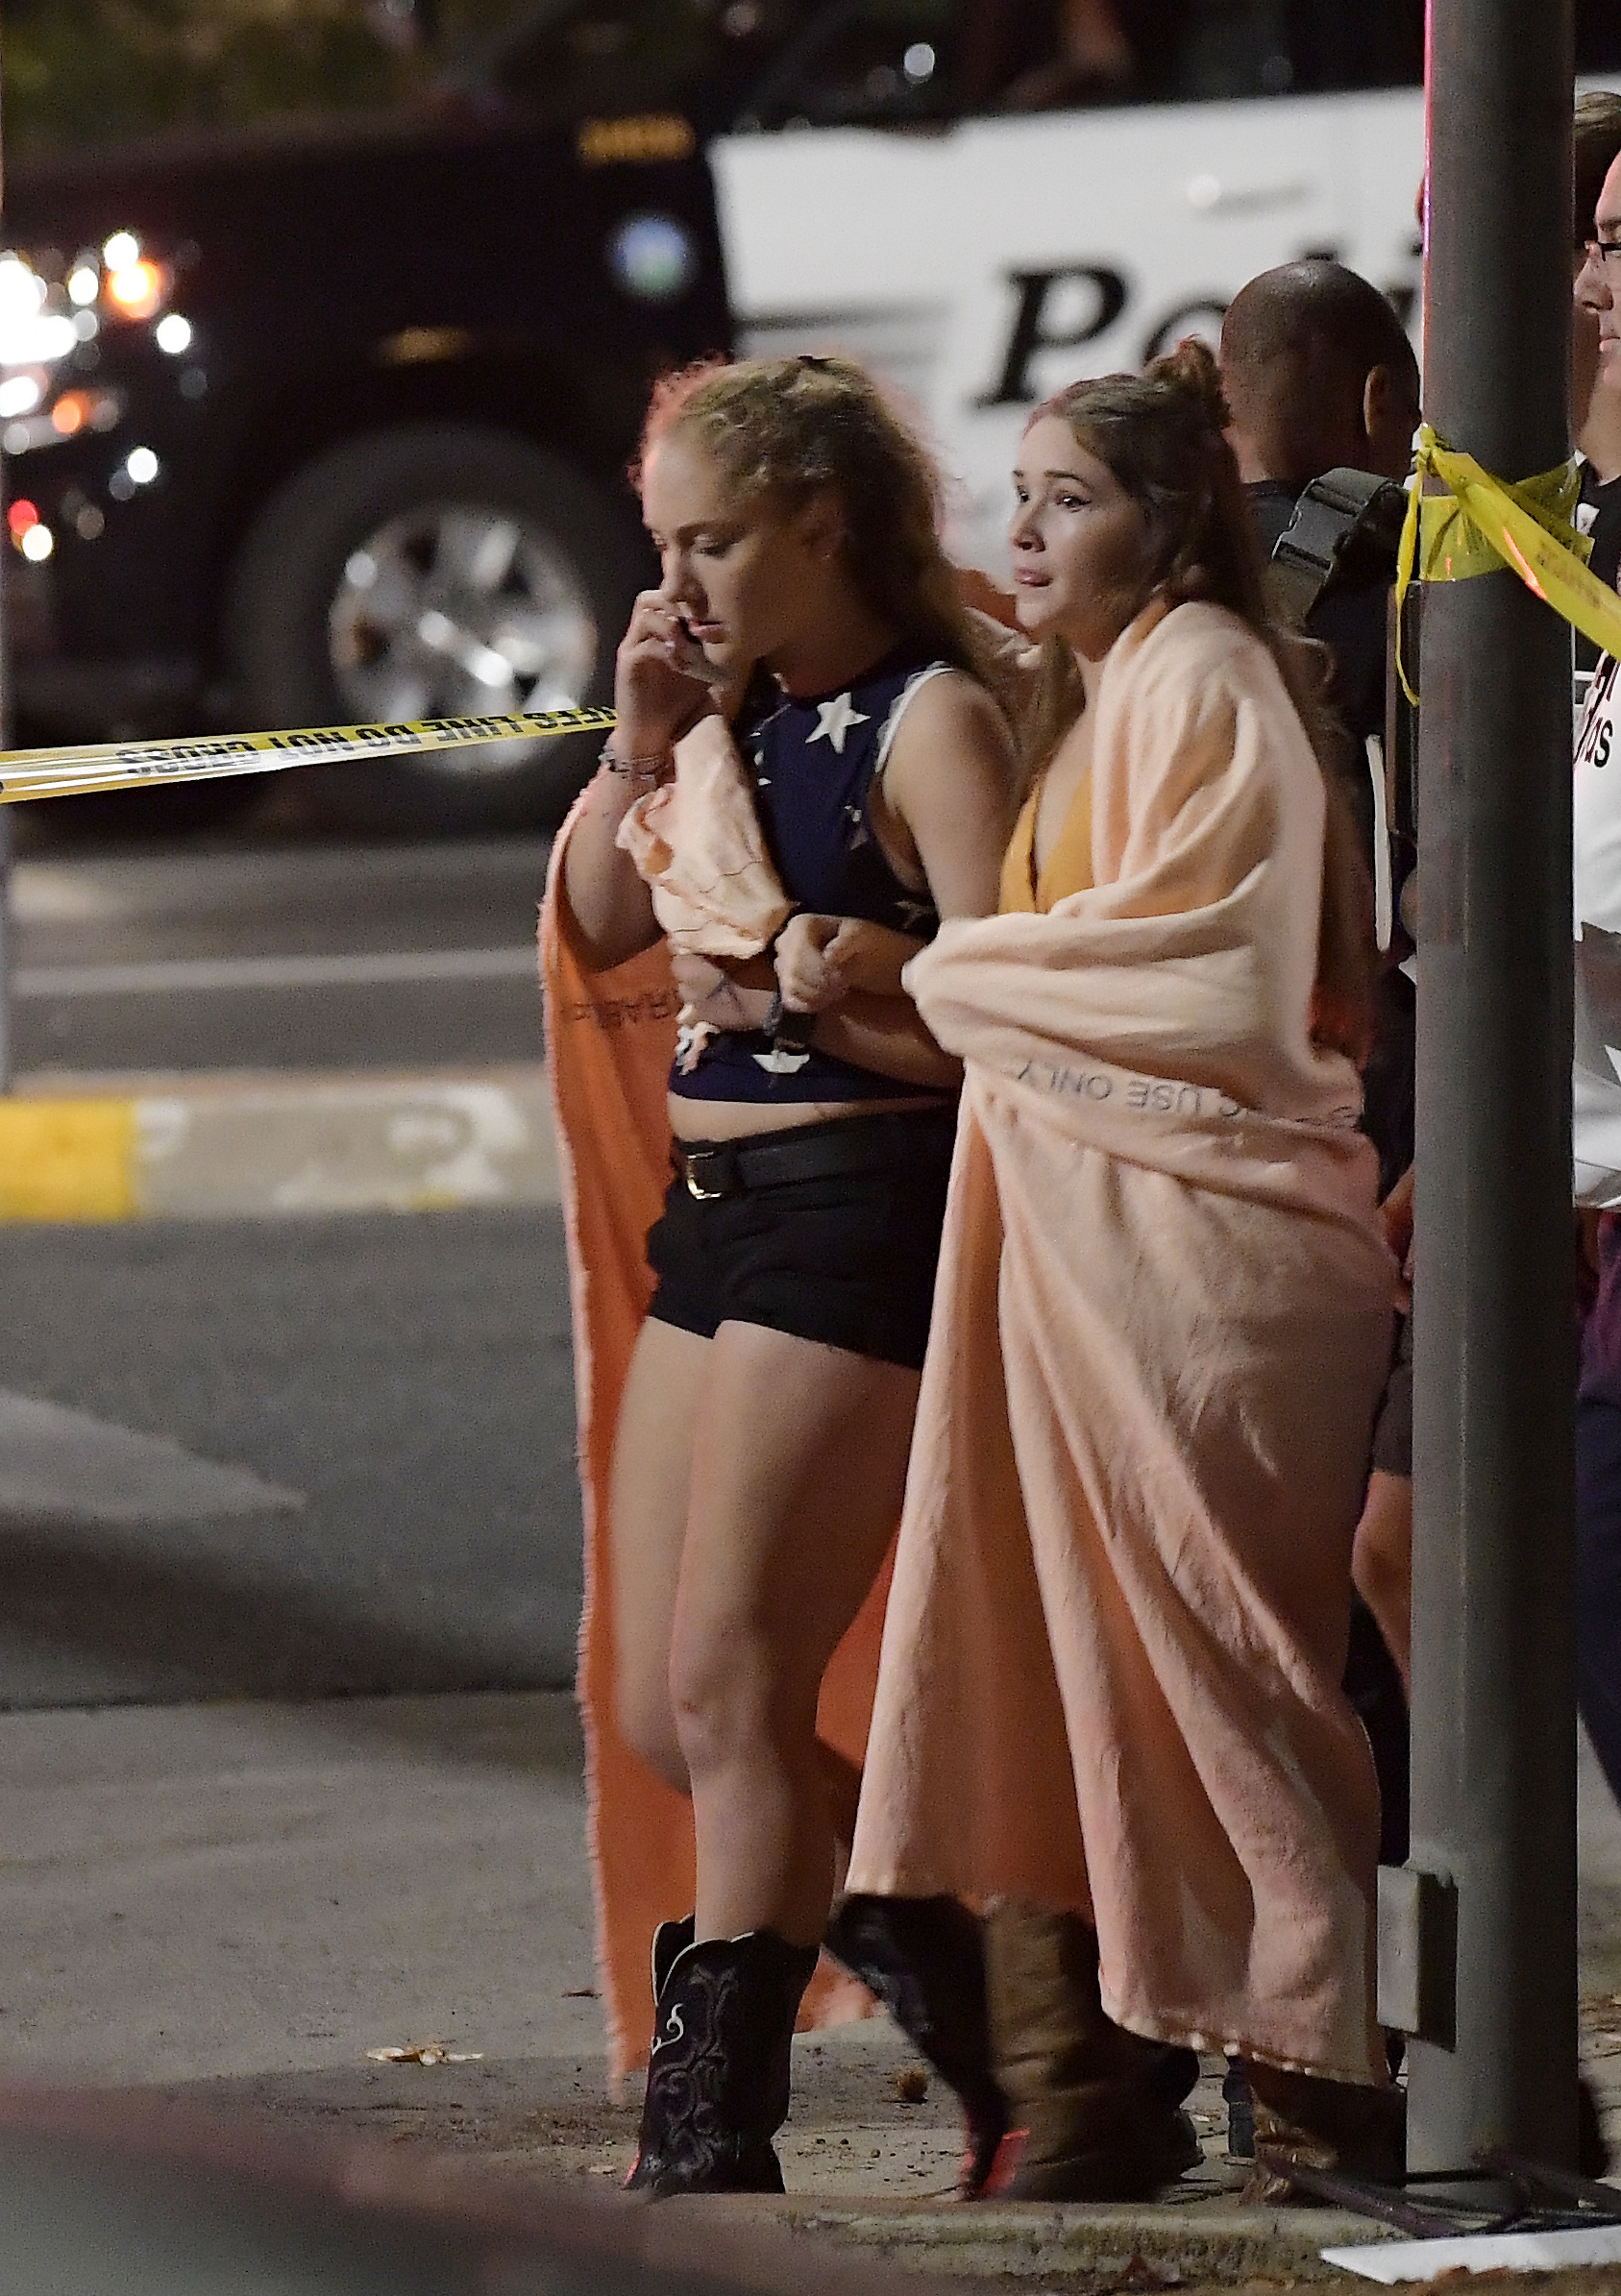 <div class='meta'><div class='origin-logo' data-origin='none'></div><span class='caption-text' data-credit='AP Photo/Mark J. Terrill'>Two young ladies comfort each other after a shooting at a California nightclub.</span></div>